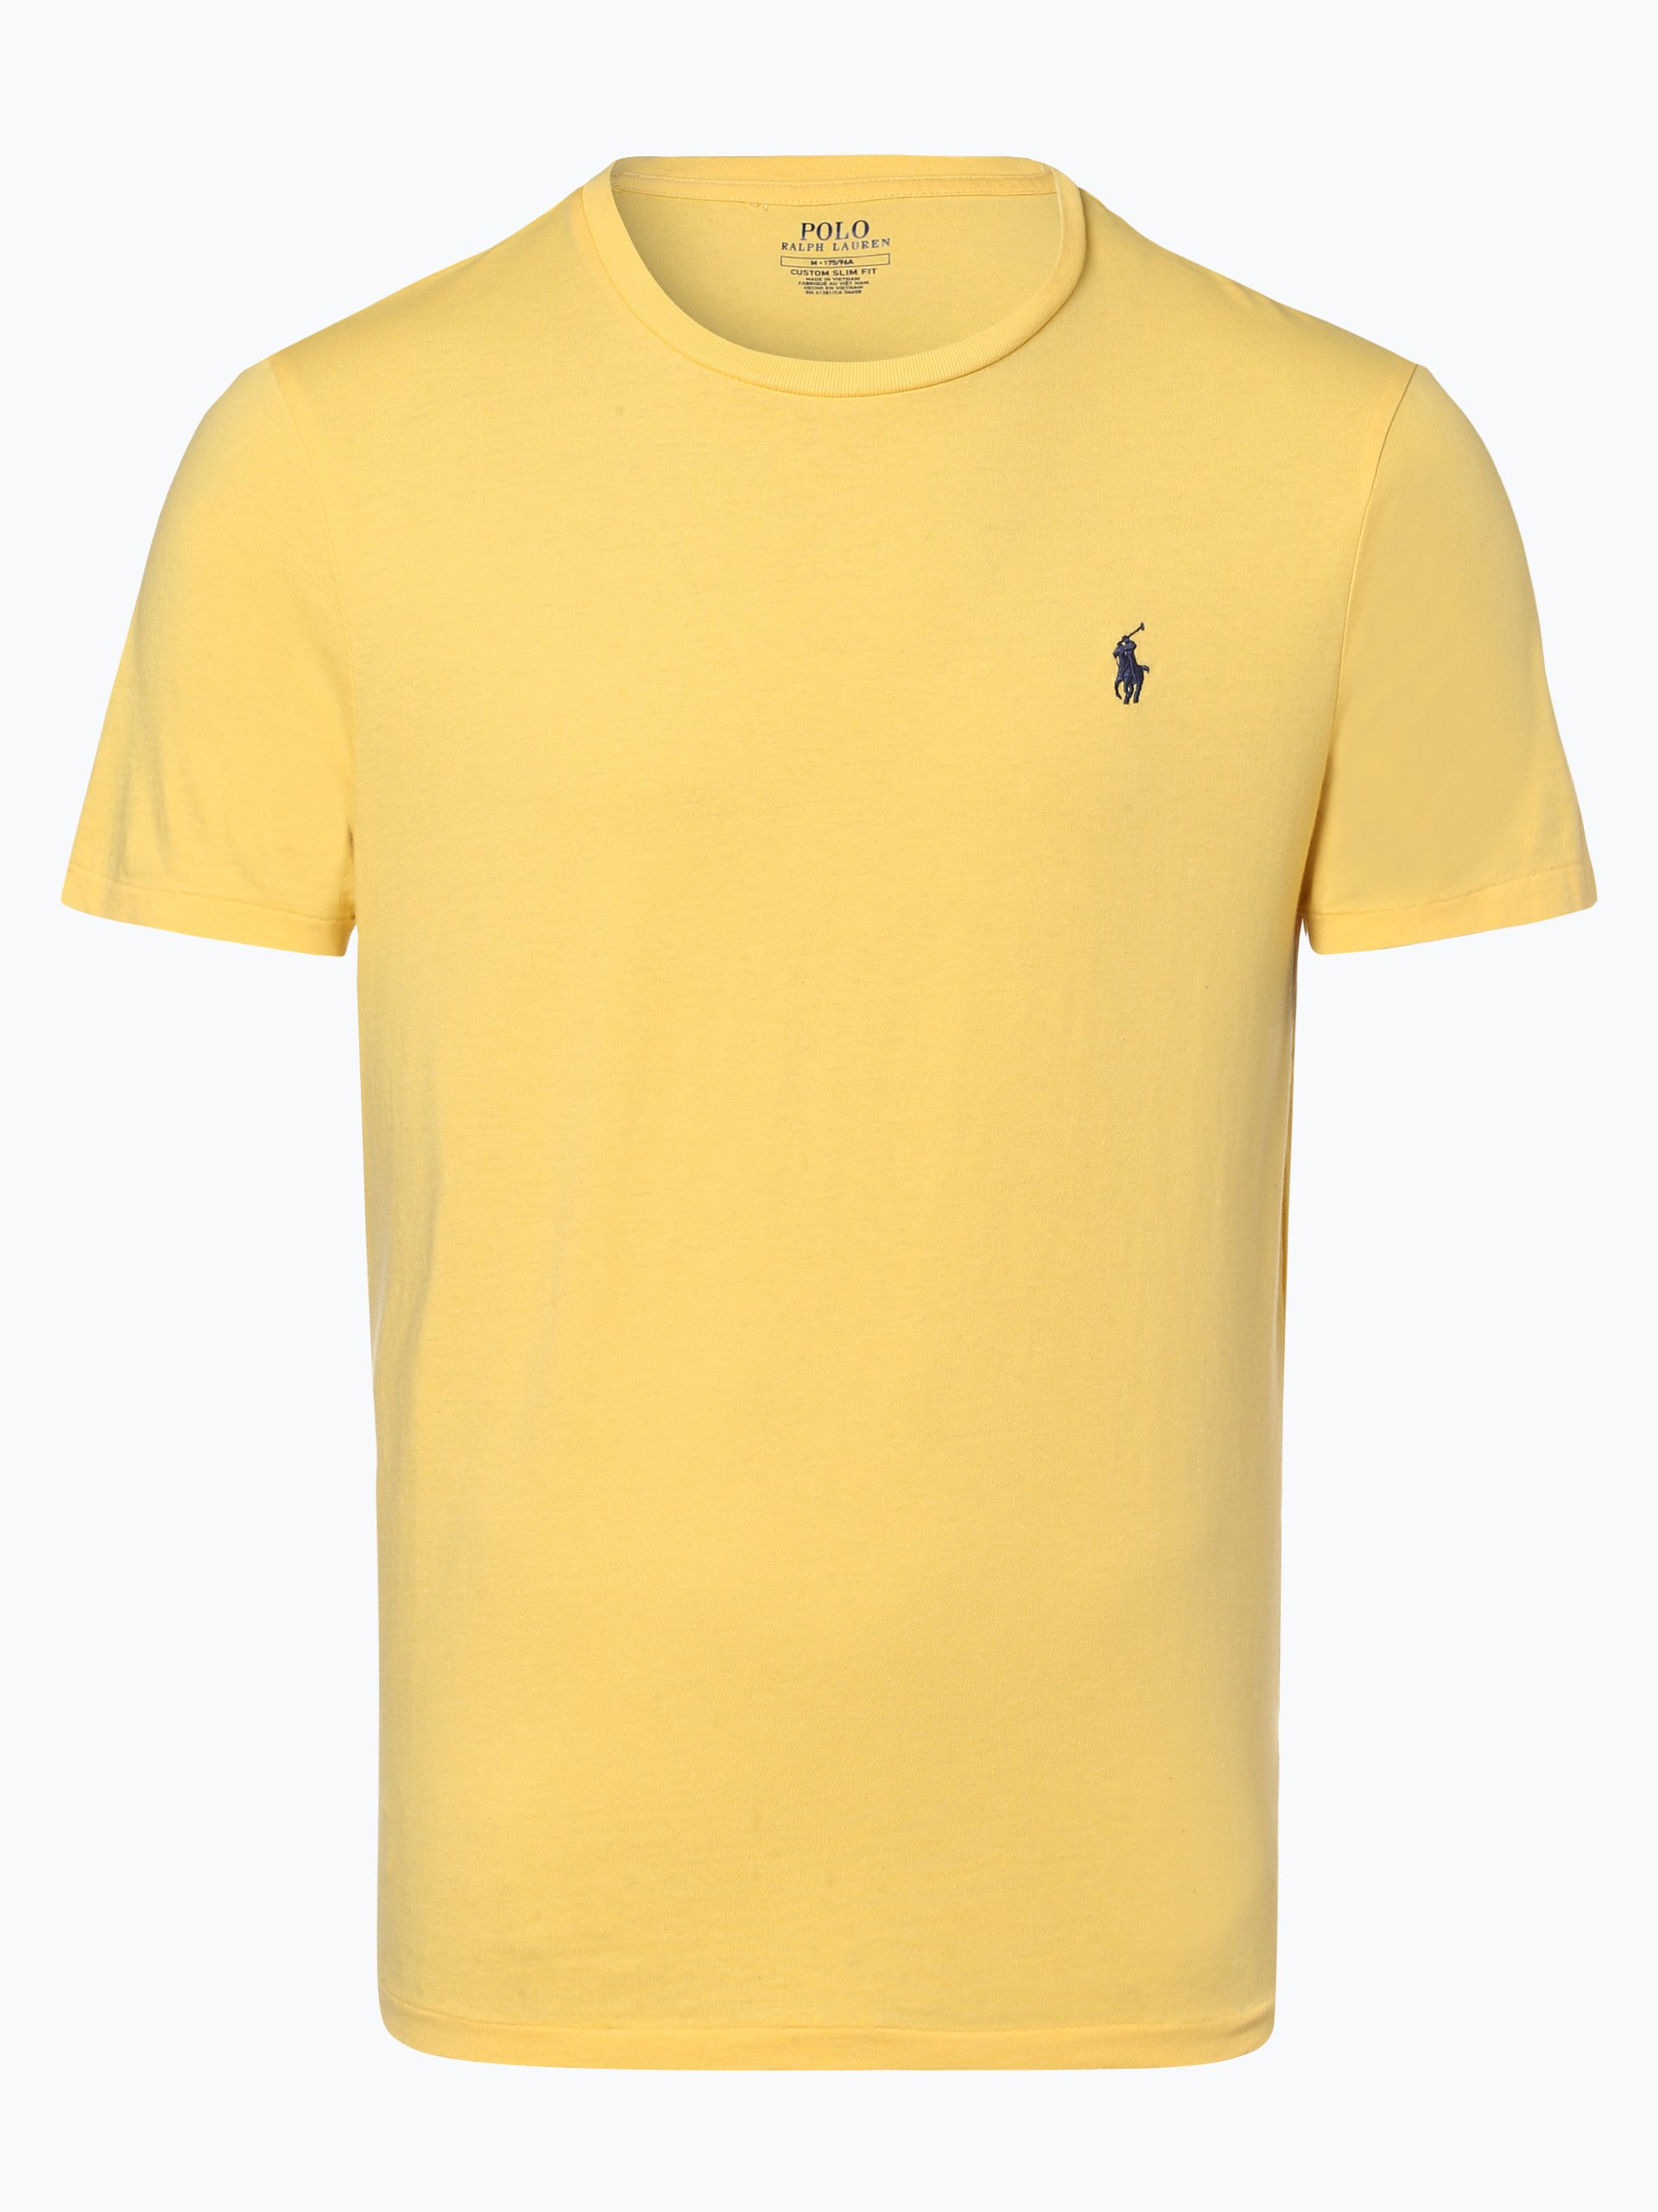 Polo Ralph Lauren T-shirt męski – Cutsom Slim Fit